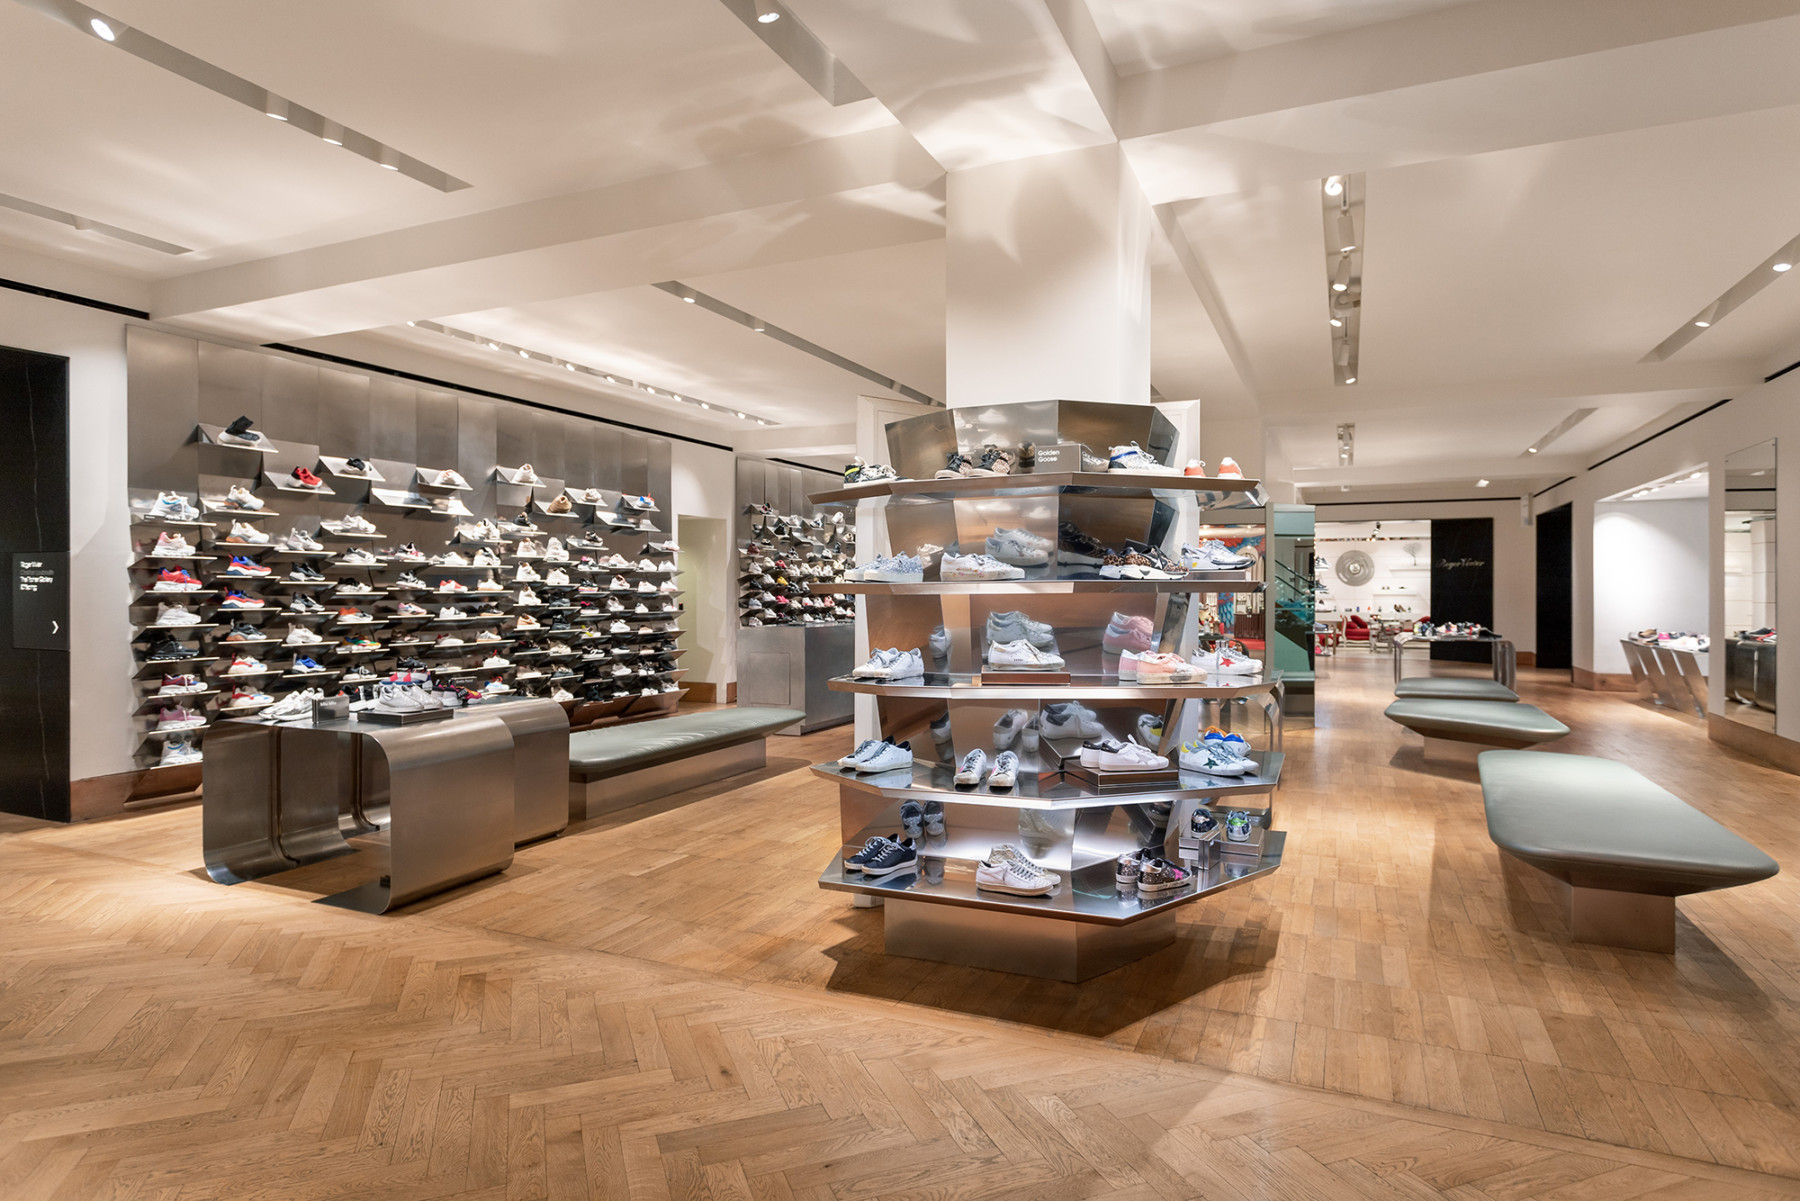 jamie-fobert-architects-selfridges-shoe-galleries-luxury-retail-concept-gallery-design-olivier-hess-photos-sneaker-wall